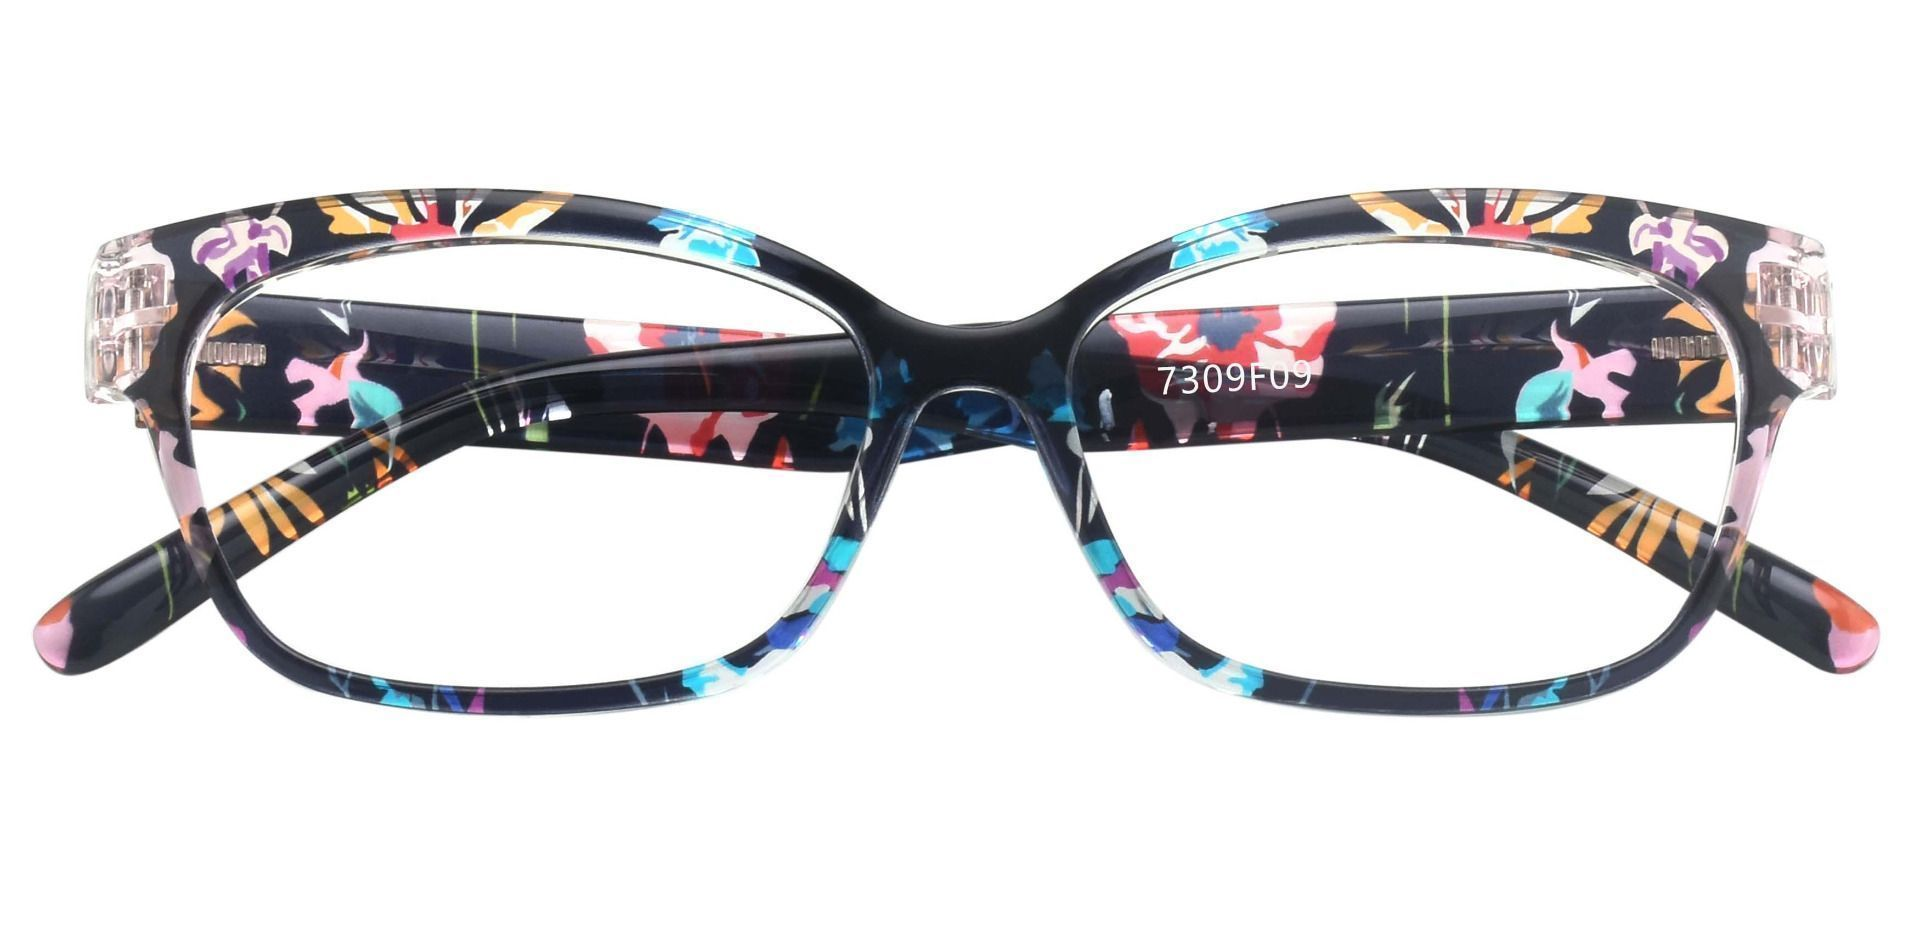 Adele Cat-Eye Prescription Glasses - Floral